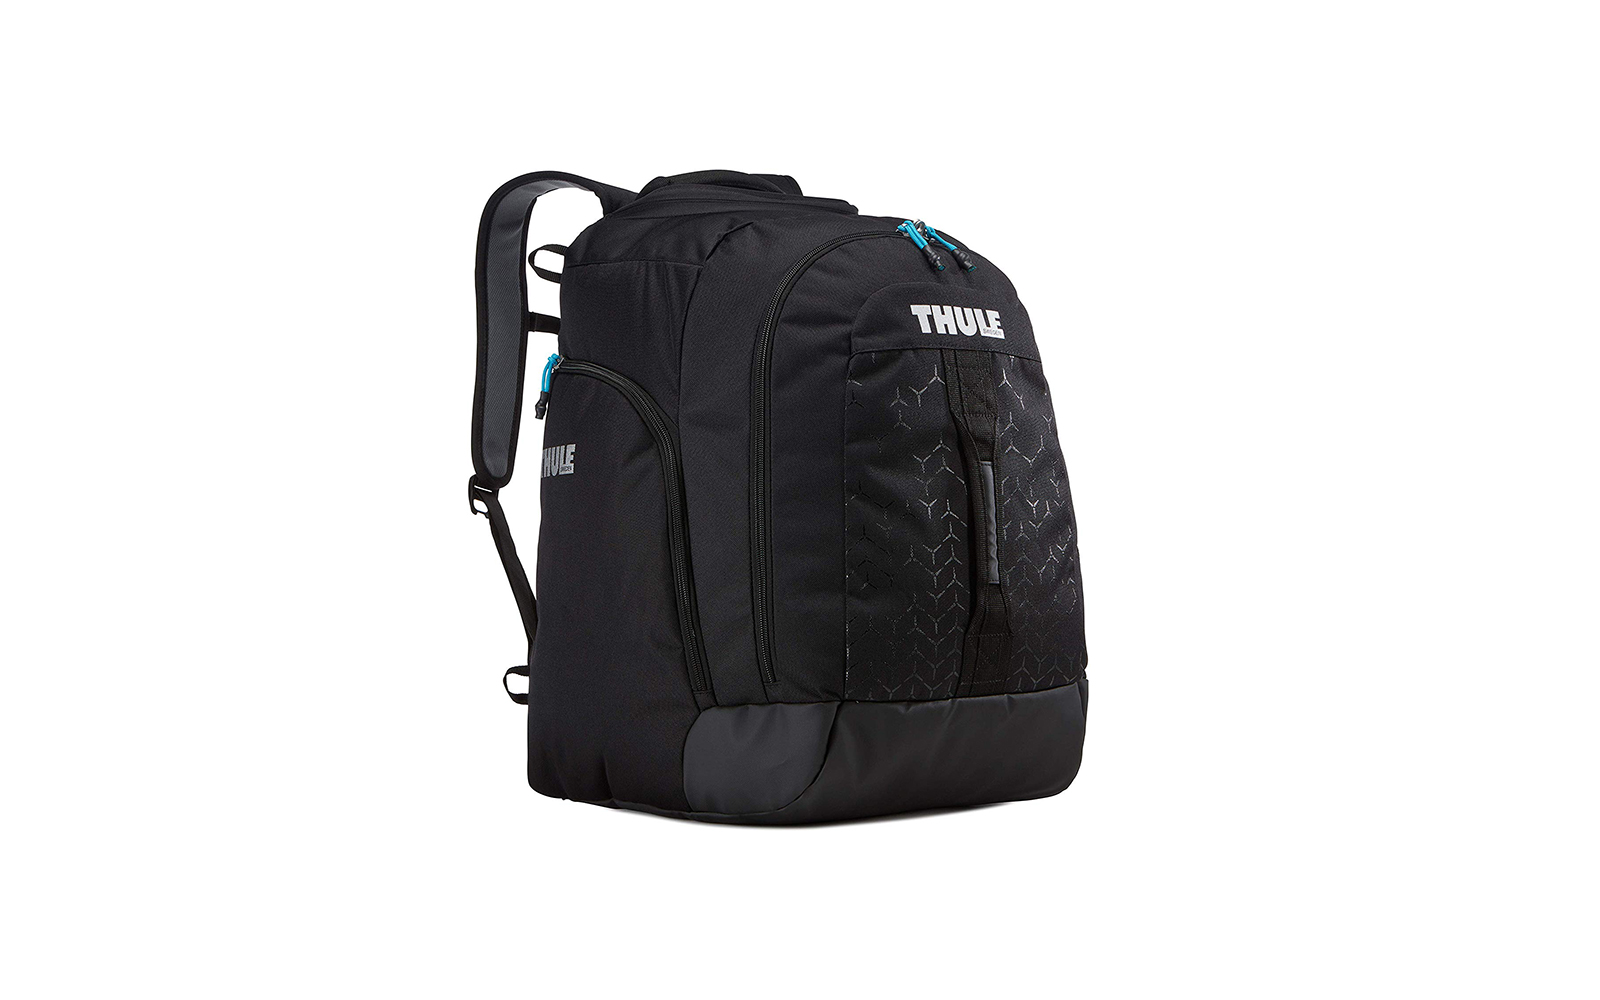 Thule RoundTrip 205101 Boot Backpack